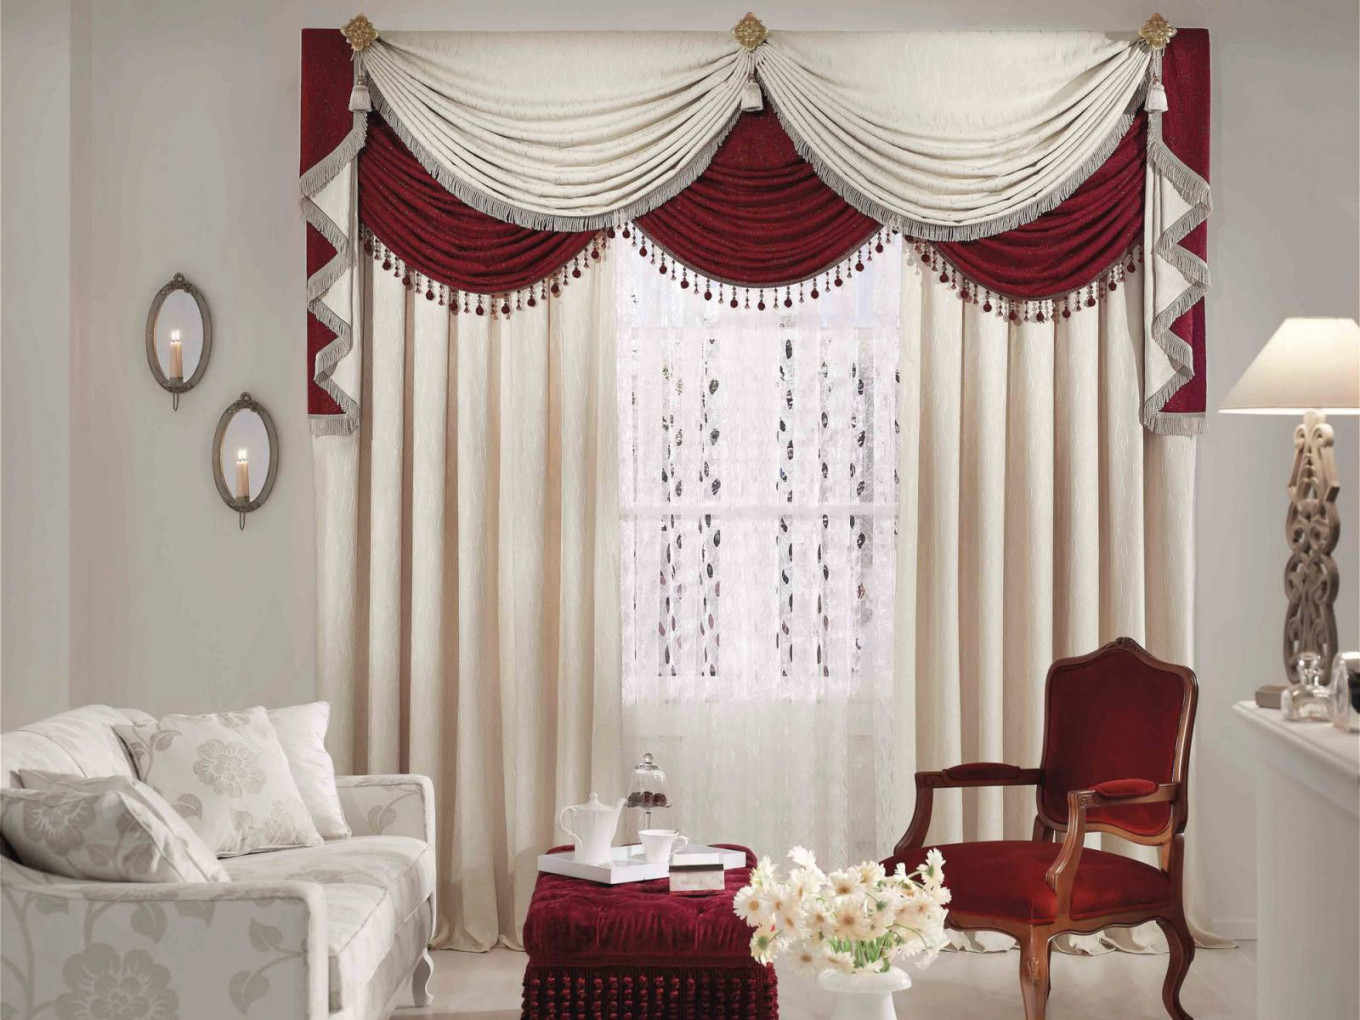 25 Cool Living Room Curtain Ideas For Your Farmhouse in Ideas Gallery For Curtain Styles For Living Rooms